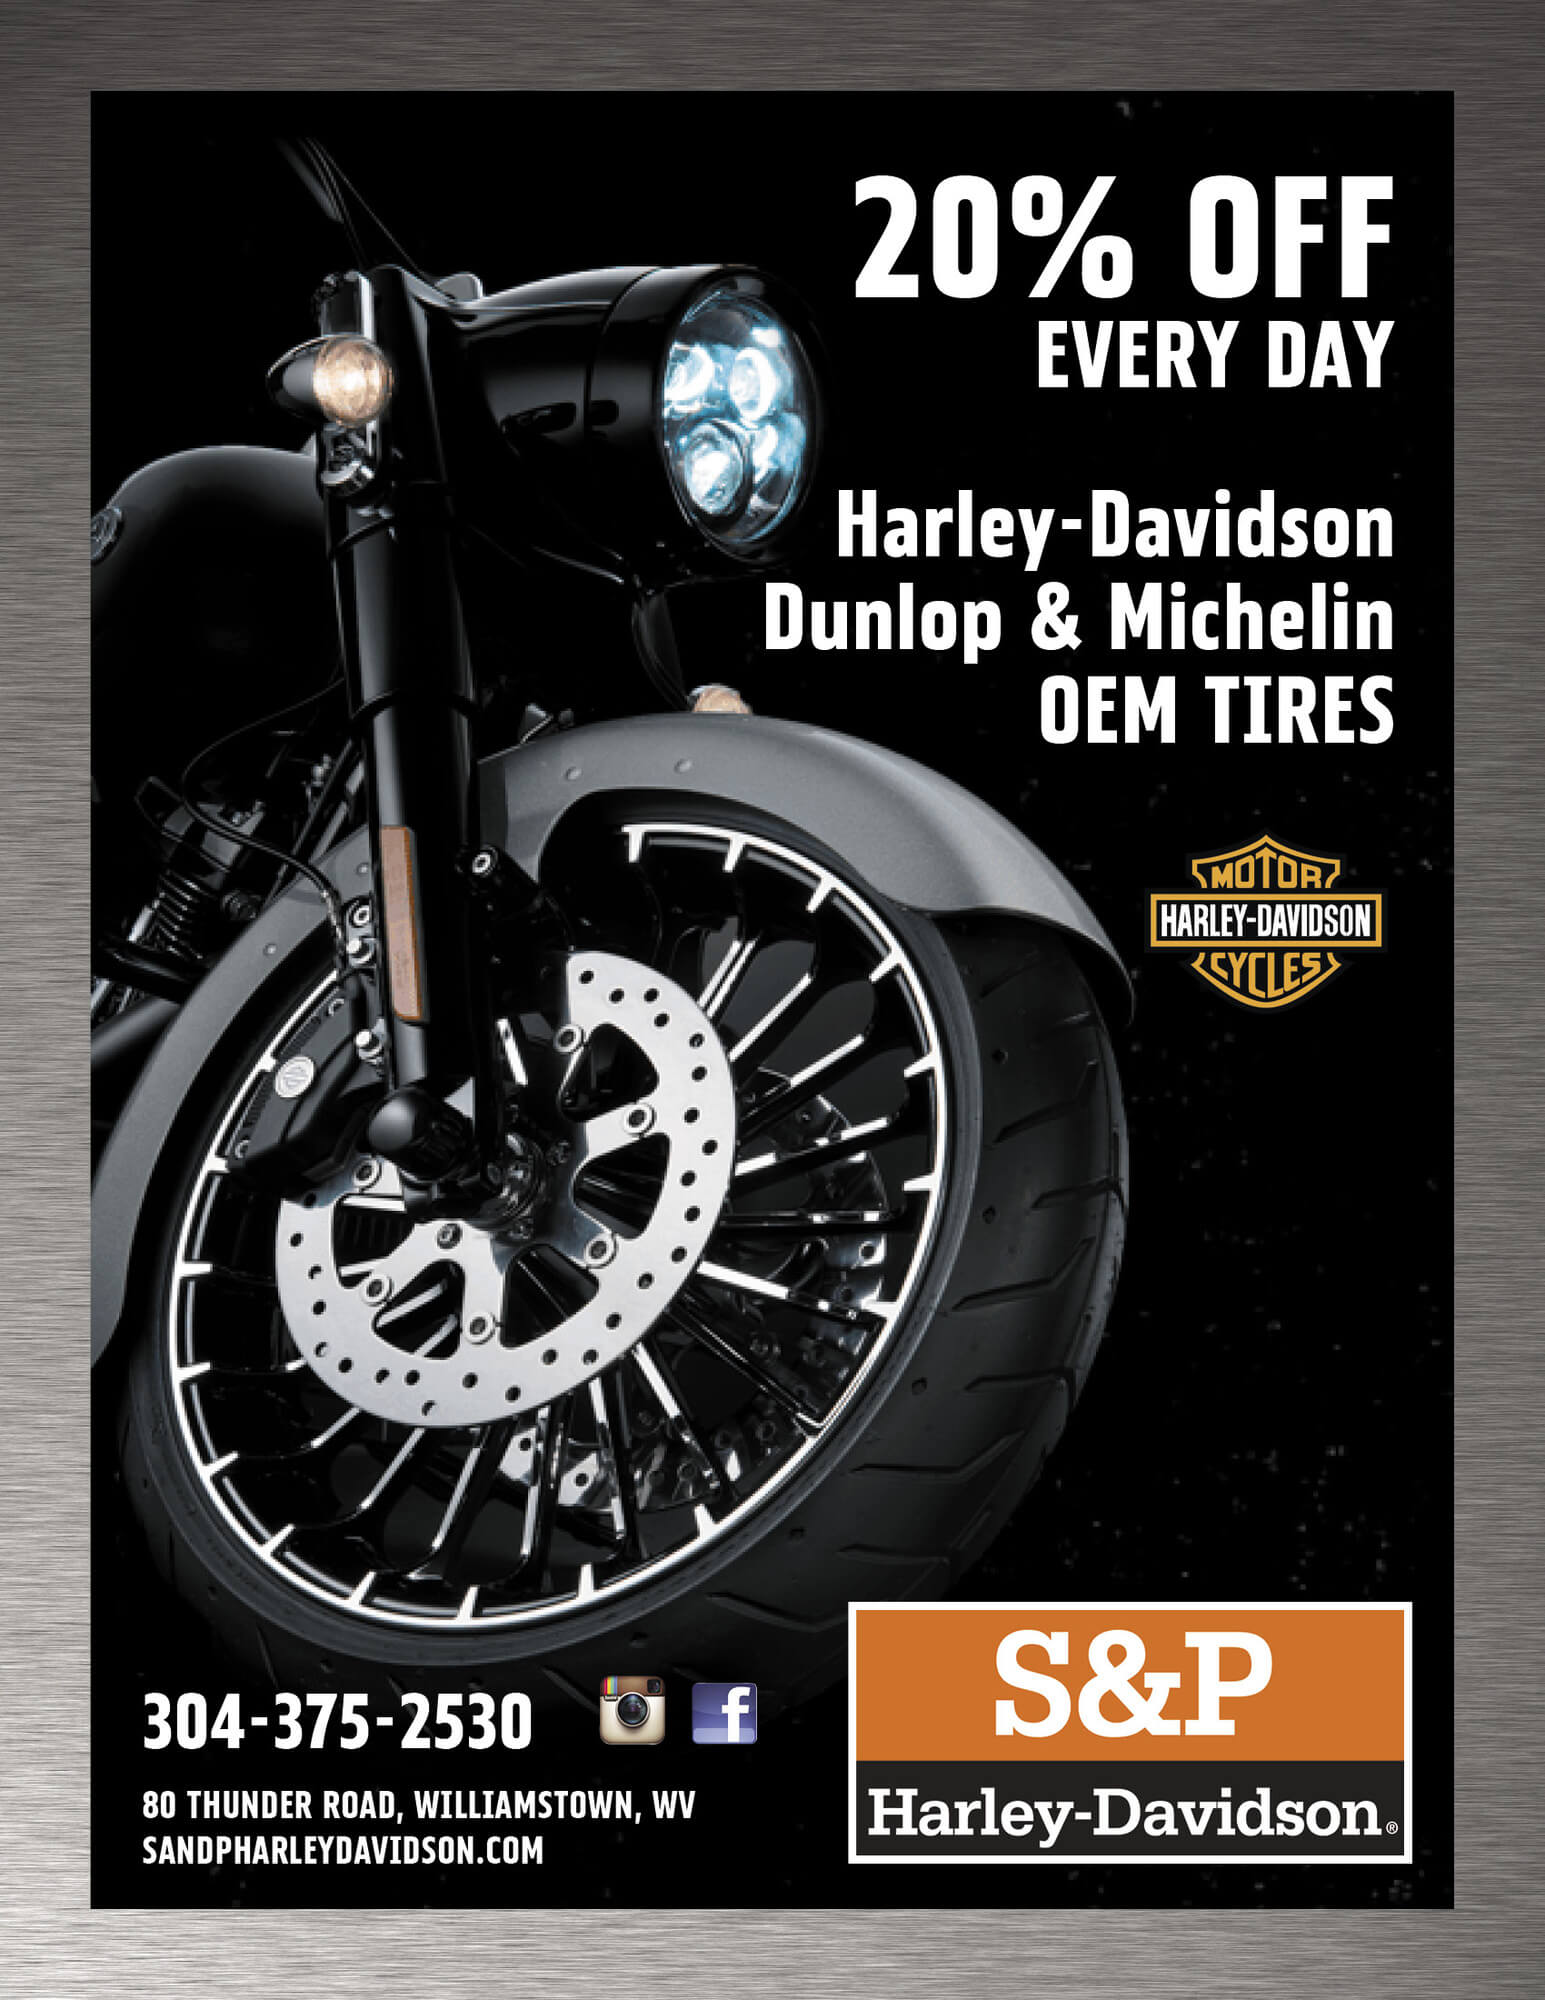 20% OFF Dunlop and Michelin OEM Tires